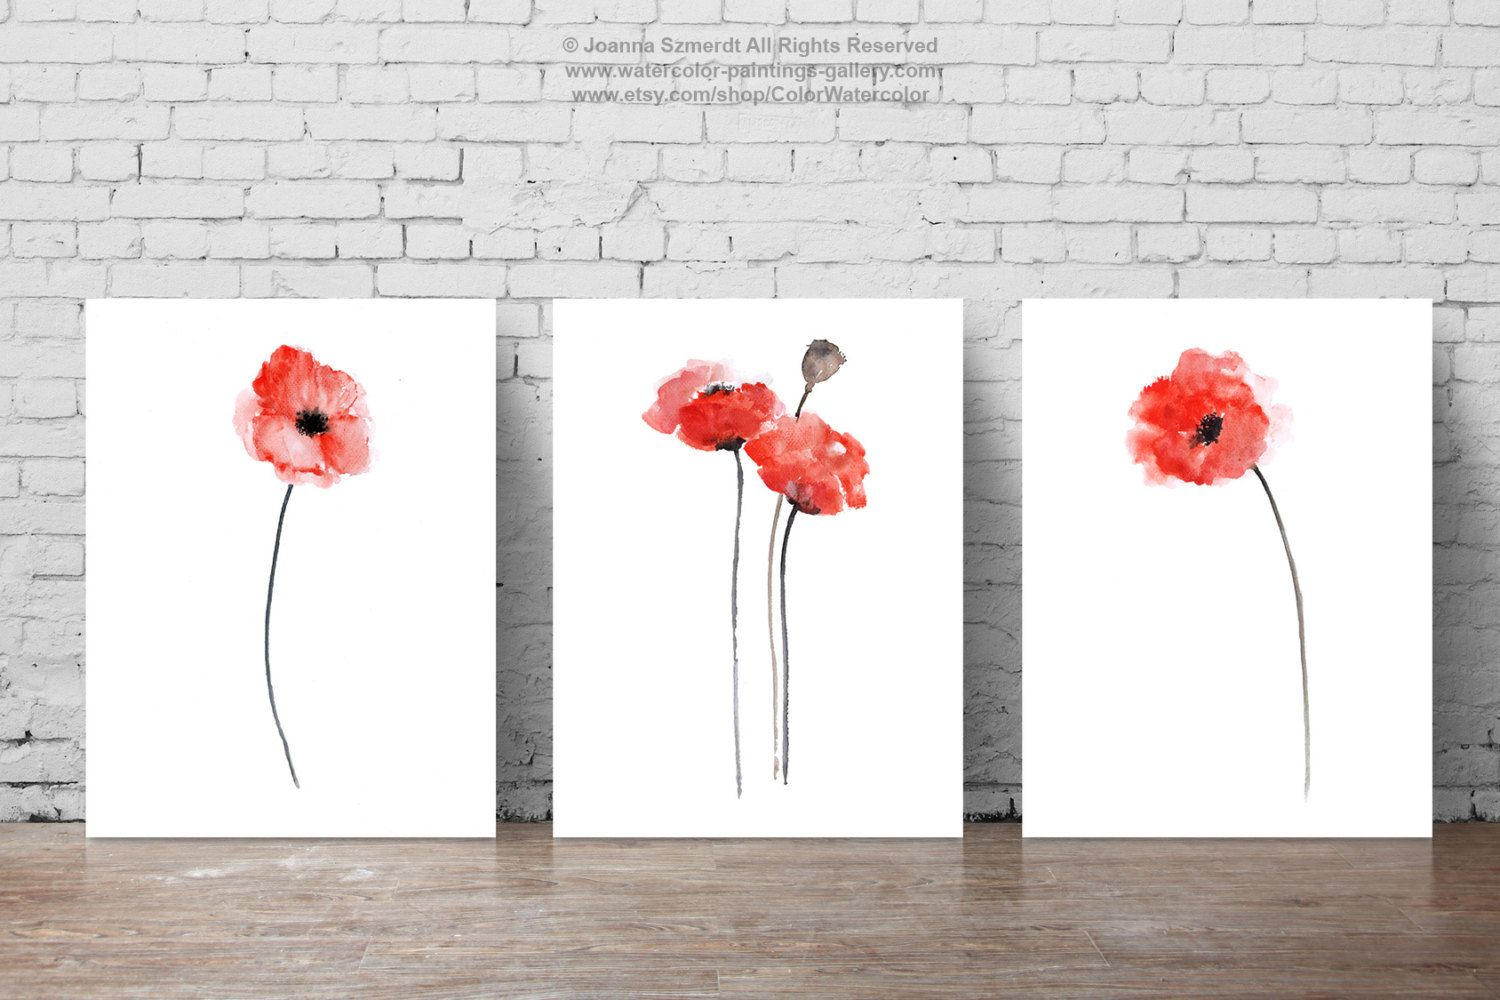 Red Poppies Set Of 3 Abstract Flower Painting Home Decorators Catalog Best Ideas of Home Decor and Design [homedecoratorscatalog.us]